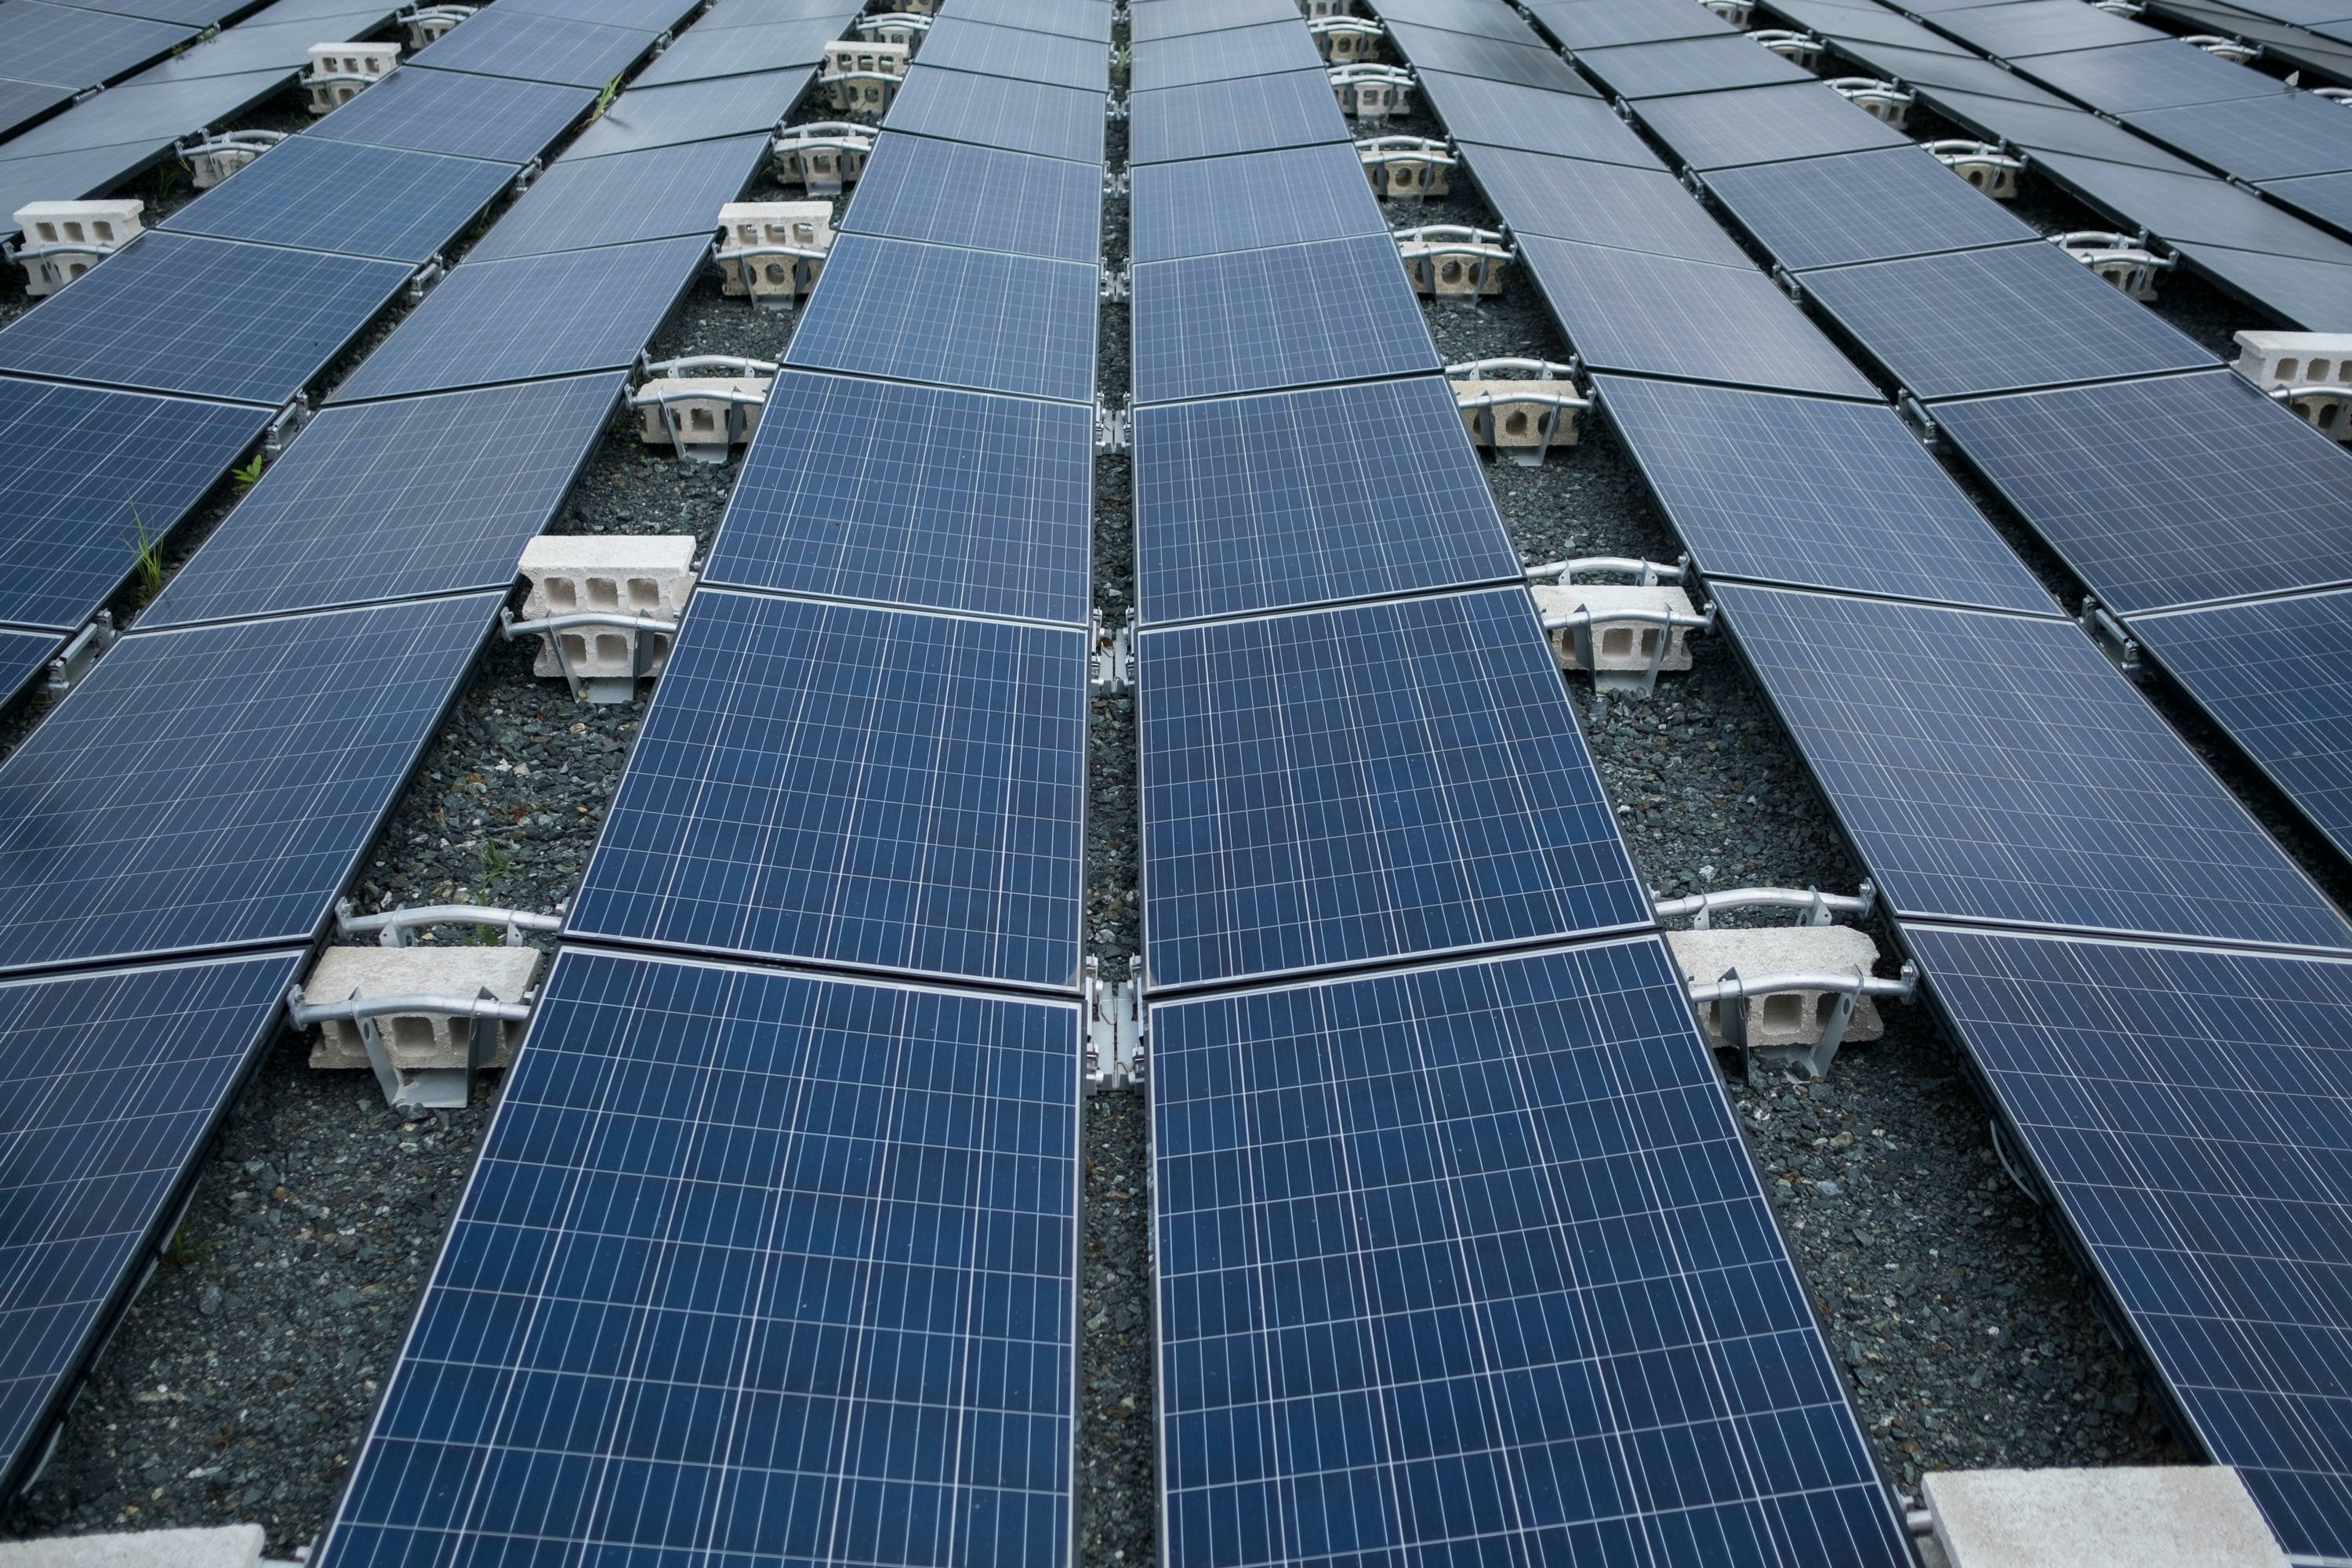 In this July 20 photo, solar panels installed by Tesla, power a community of 12 homes in the mountain town of Las Piedras, Puerto Rico. The homes still do not have power from the national grid, more than 10 months after Hurricane Maria and now is operating exclusively on solar energy. (AP Photo/ Dennis M. Rivera Pichardo)